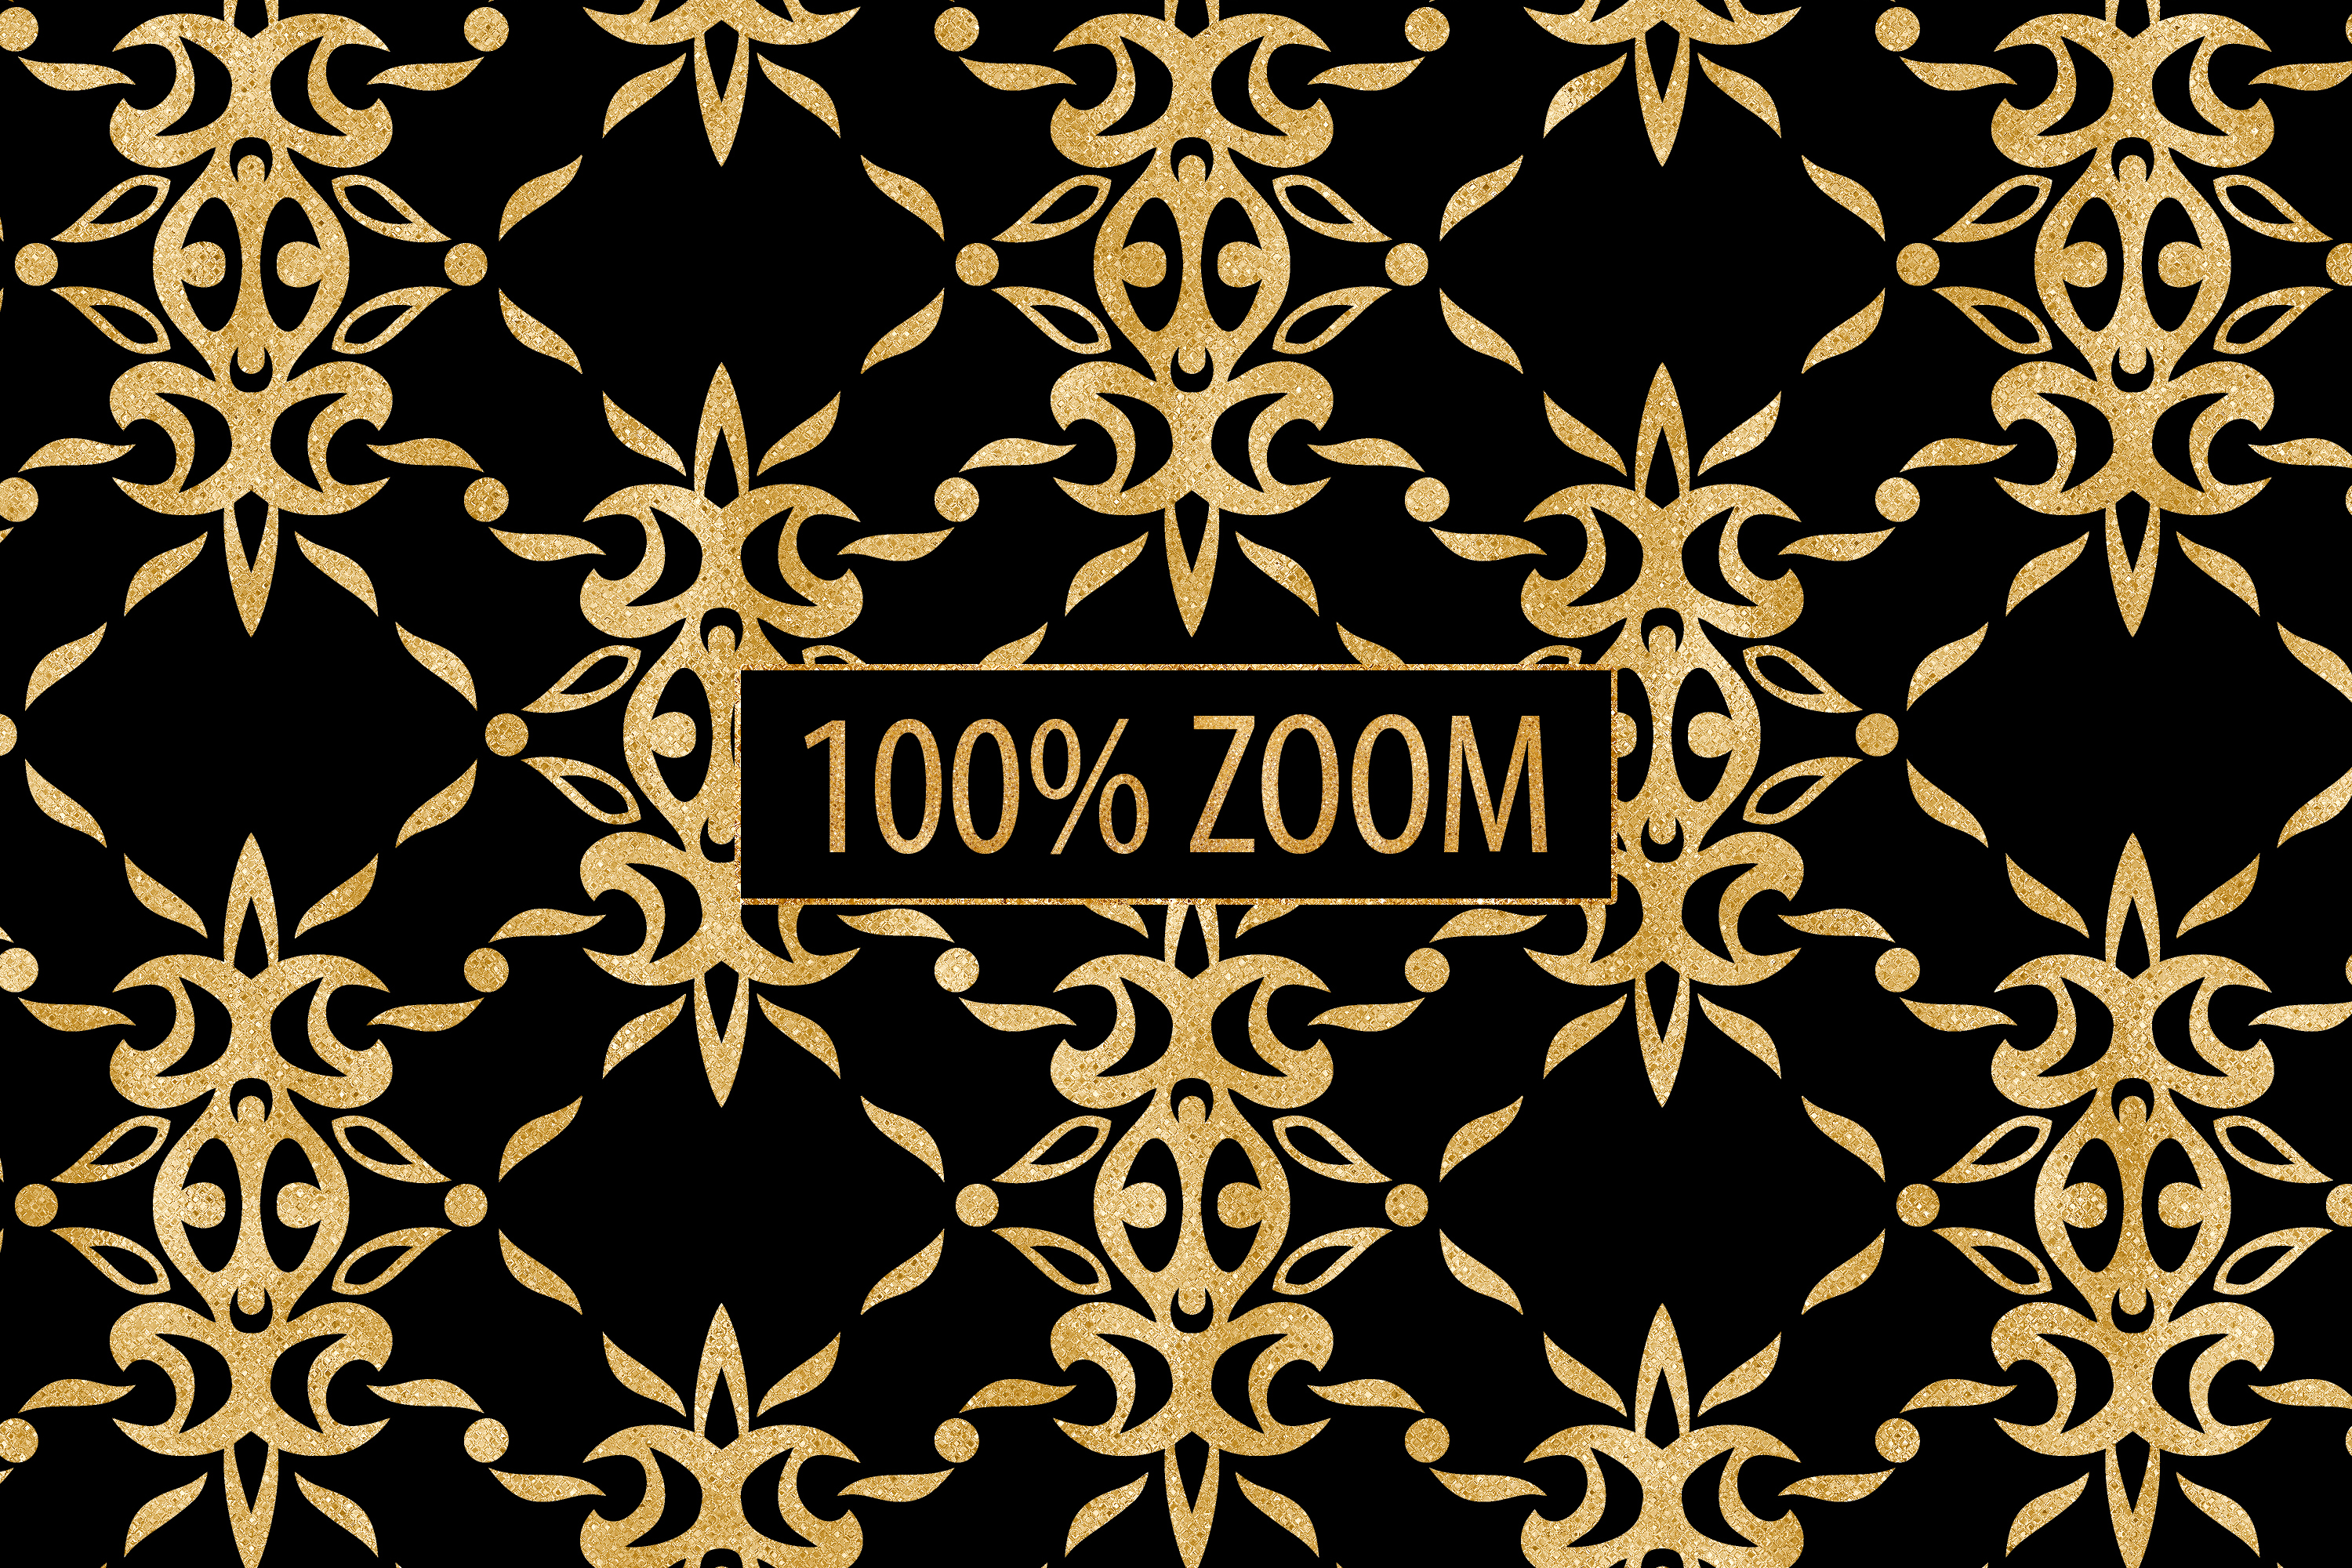 Black and Gold Seamless Papers - Damask & Geometric Patterns example image 8